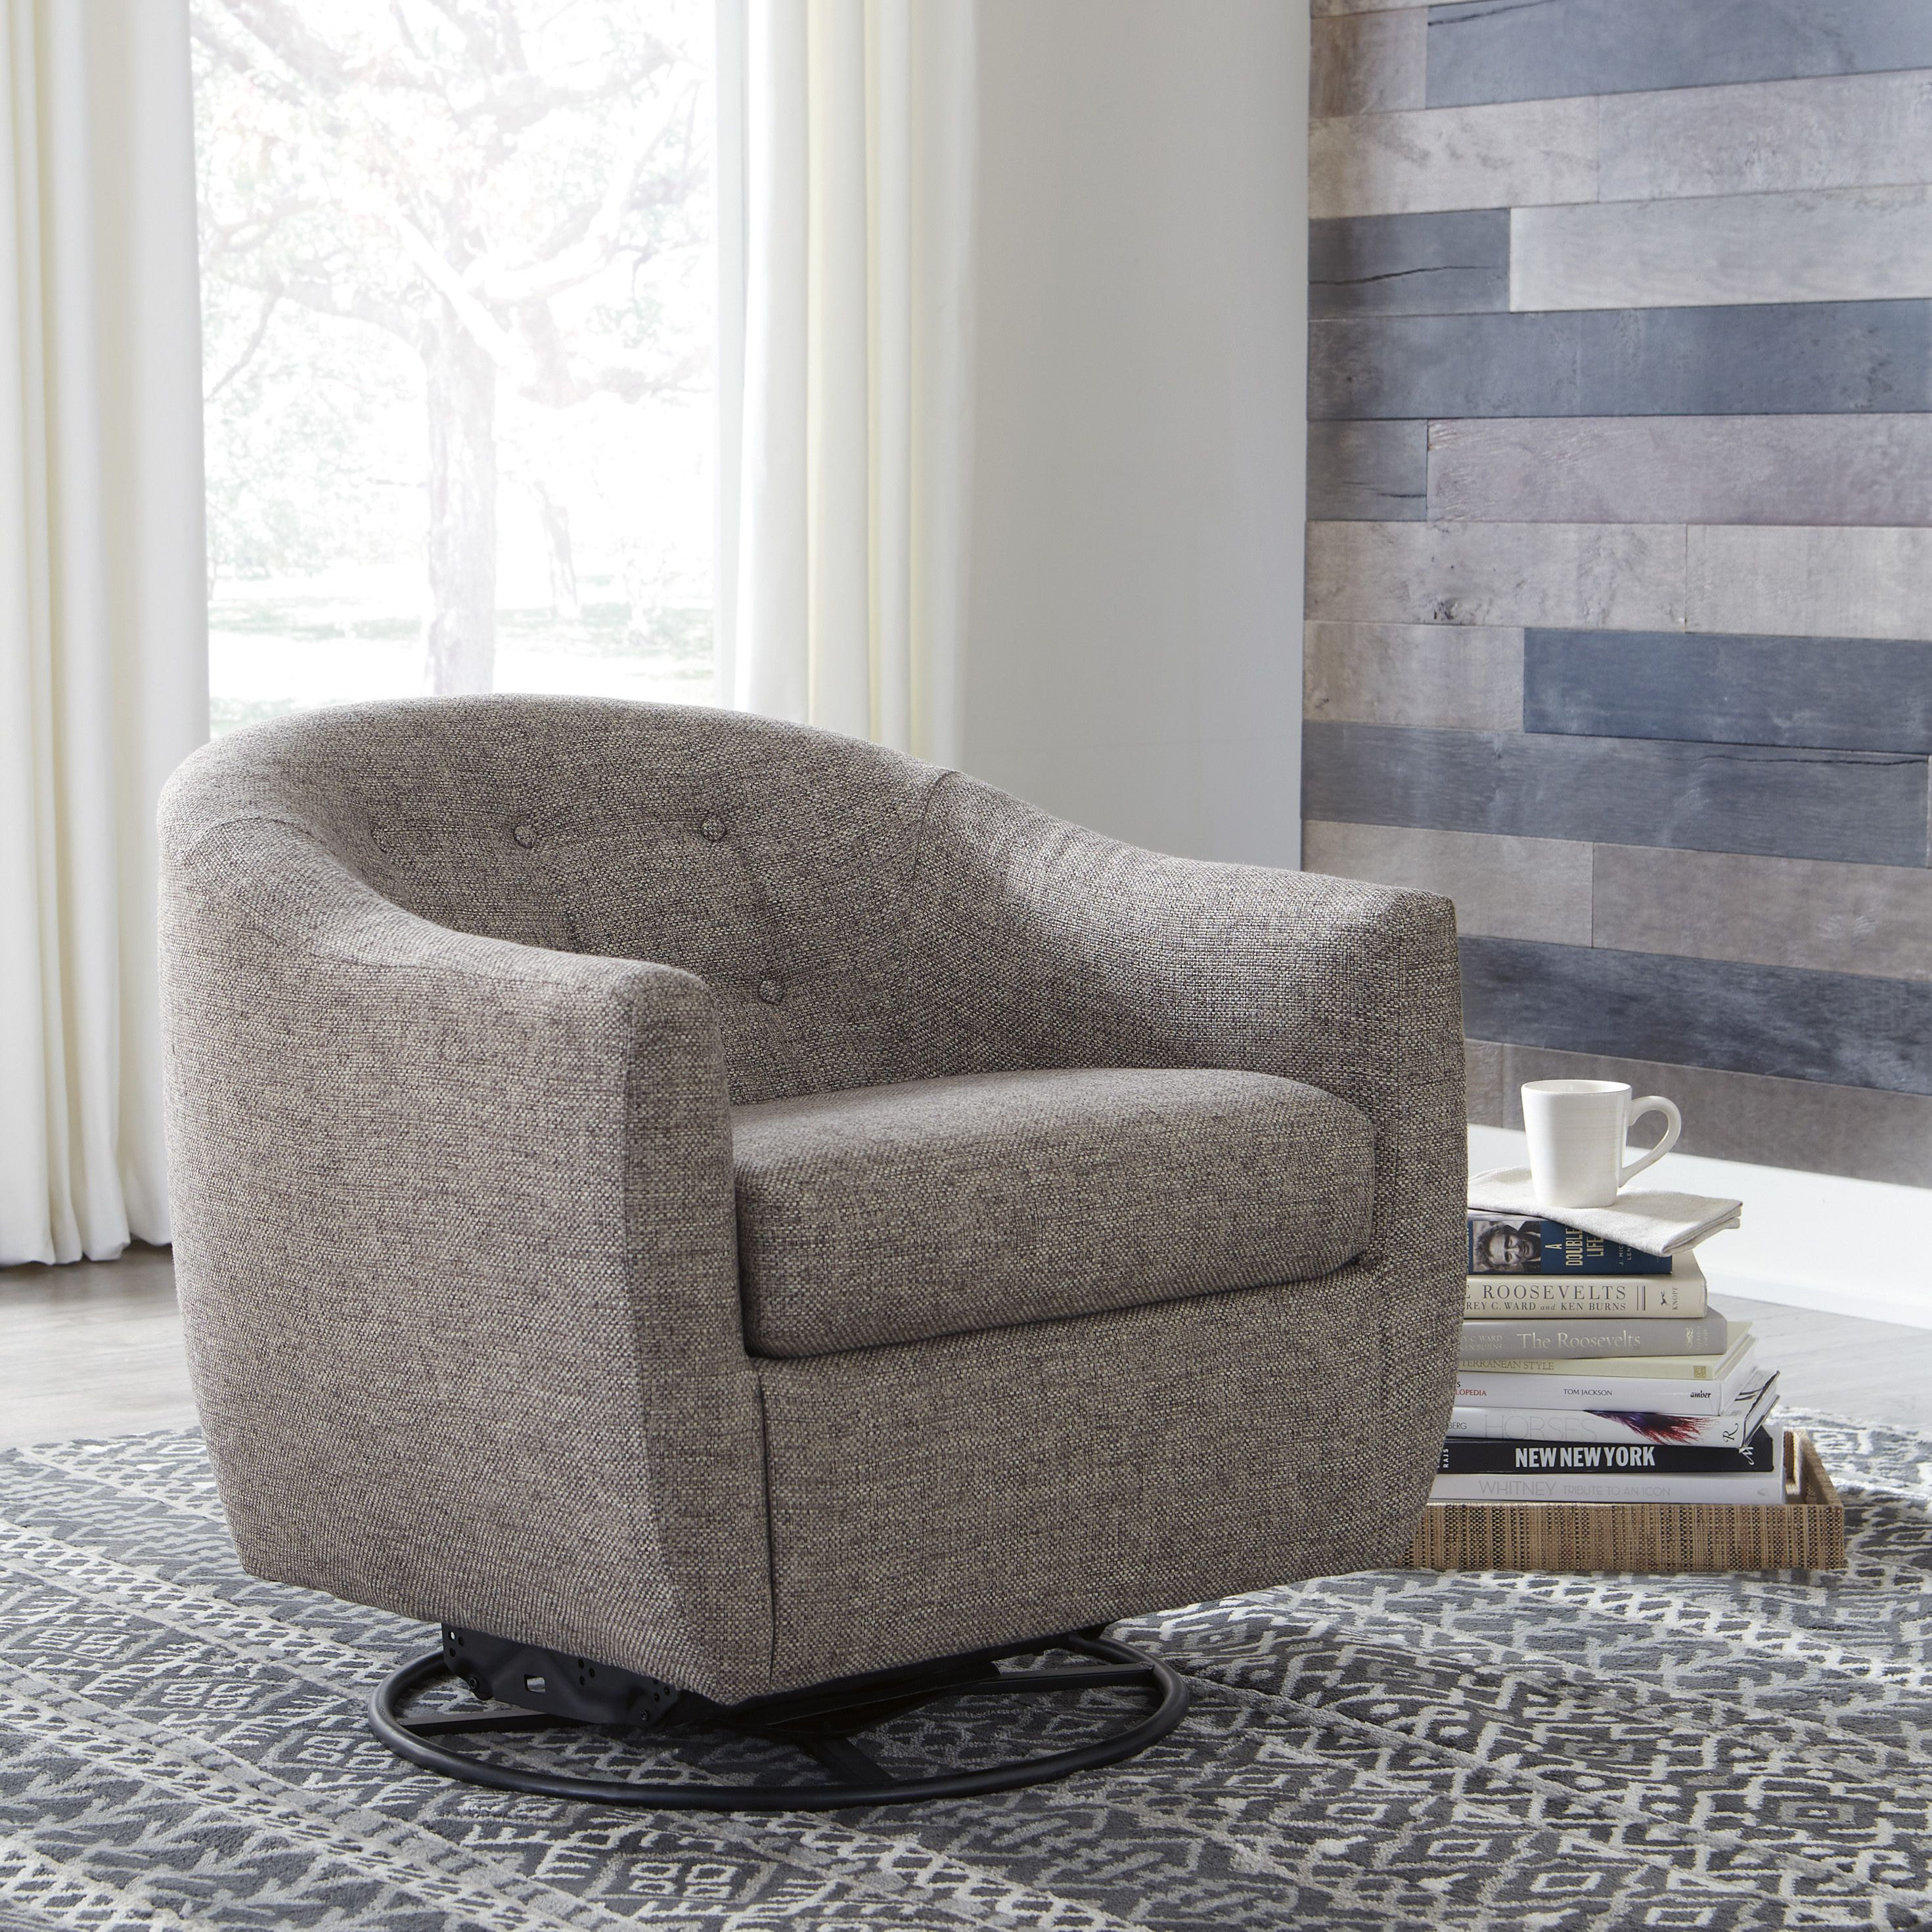 Upshur Swivel Glider Accent Chair In 2020 Accent Chairs Accent